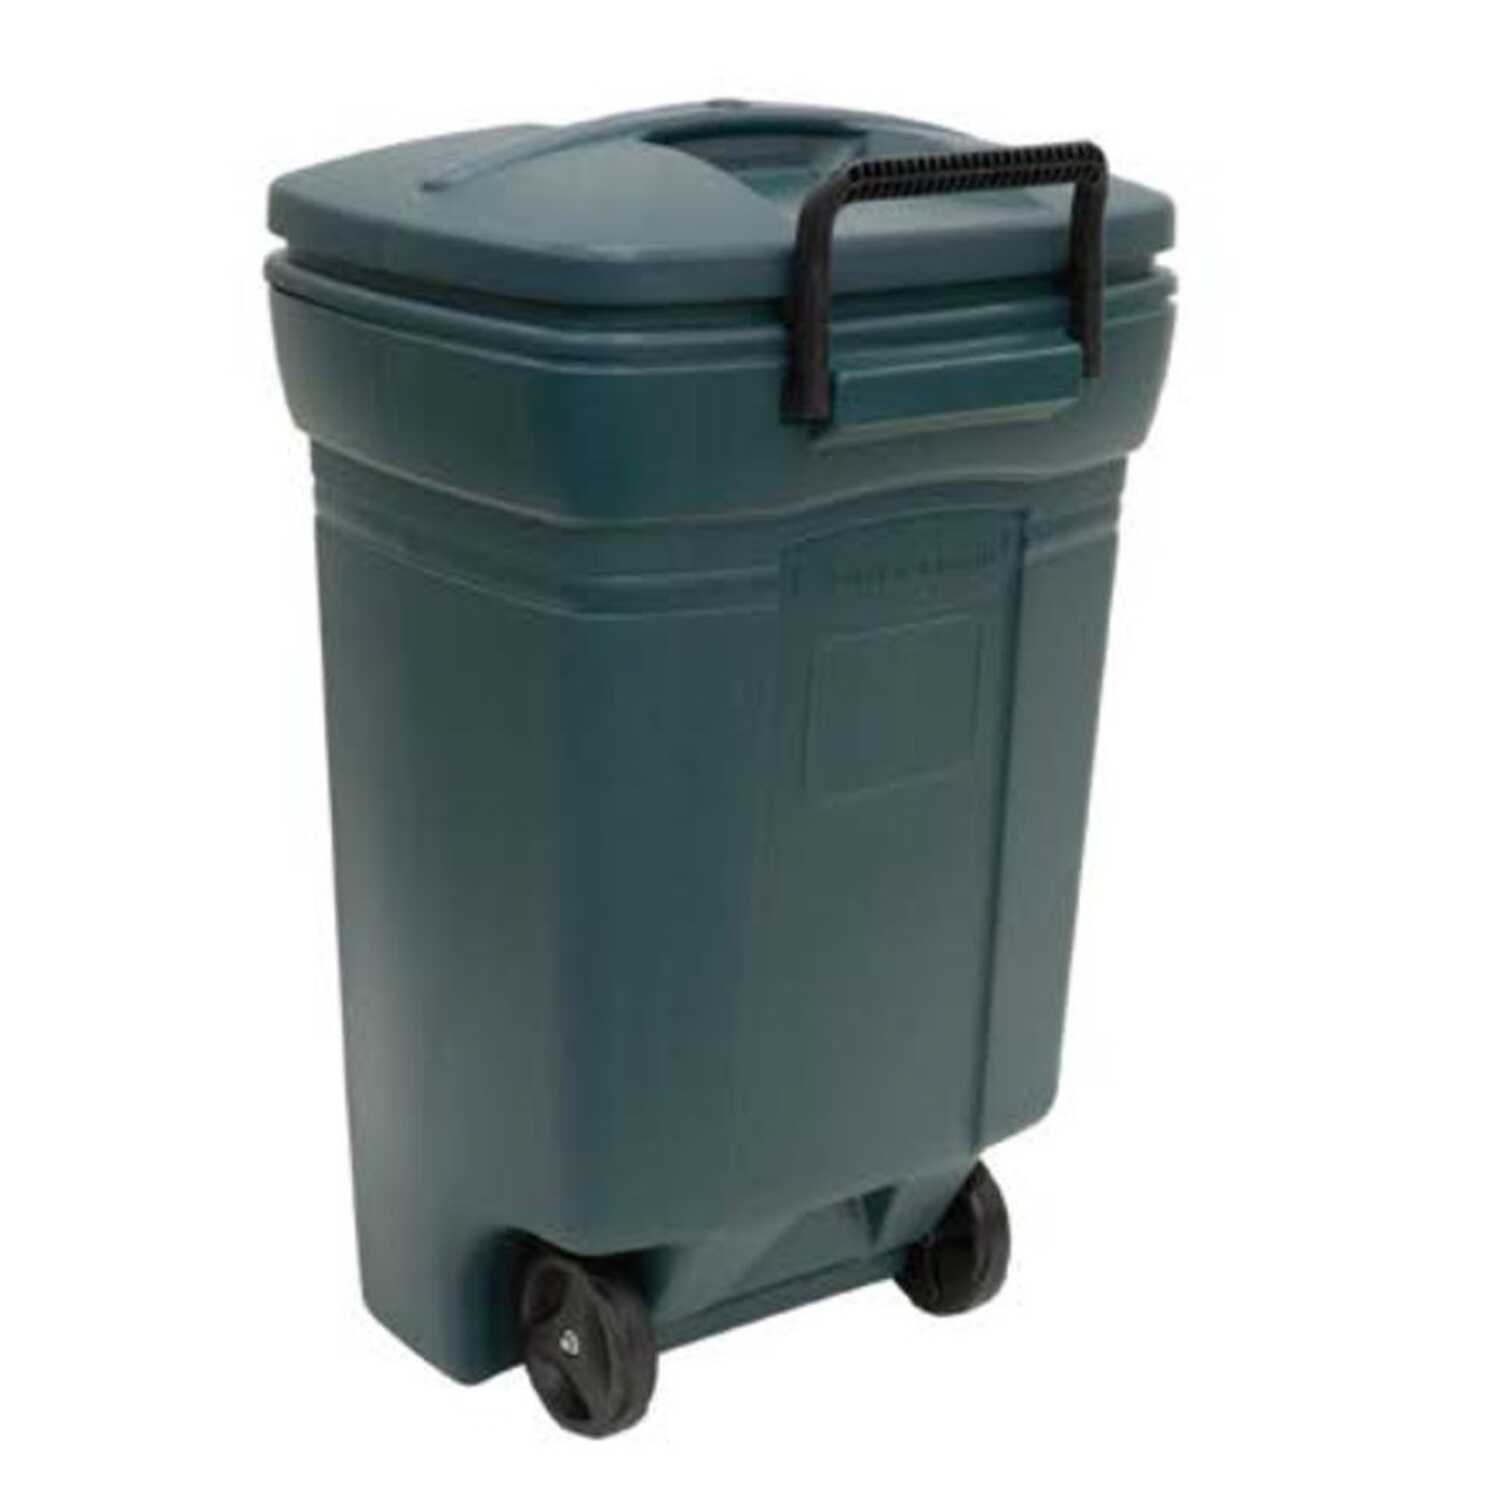 Small Trash Can Rubbermaid: Rubbermaid Roughneck 45 Gal. Plastic Wheeled Garbage Can